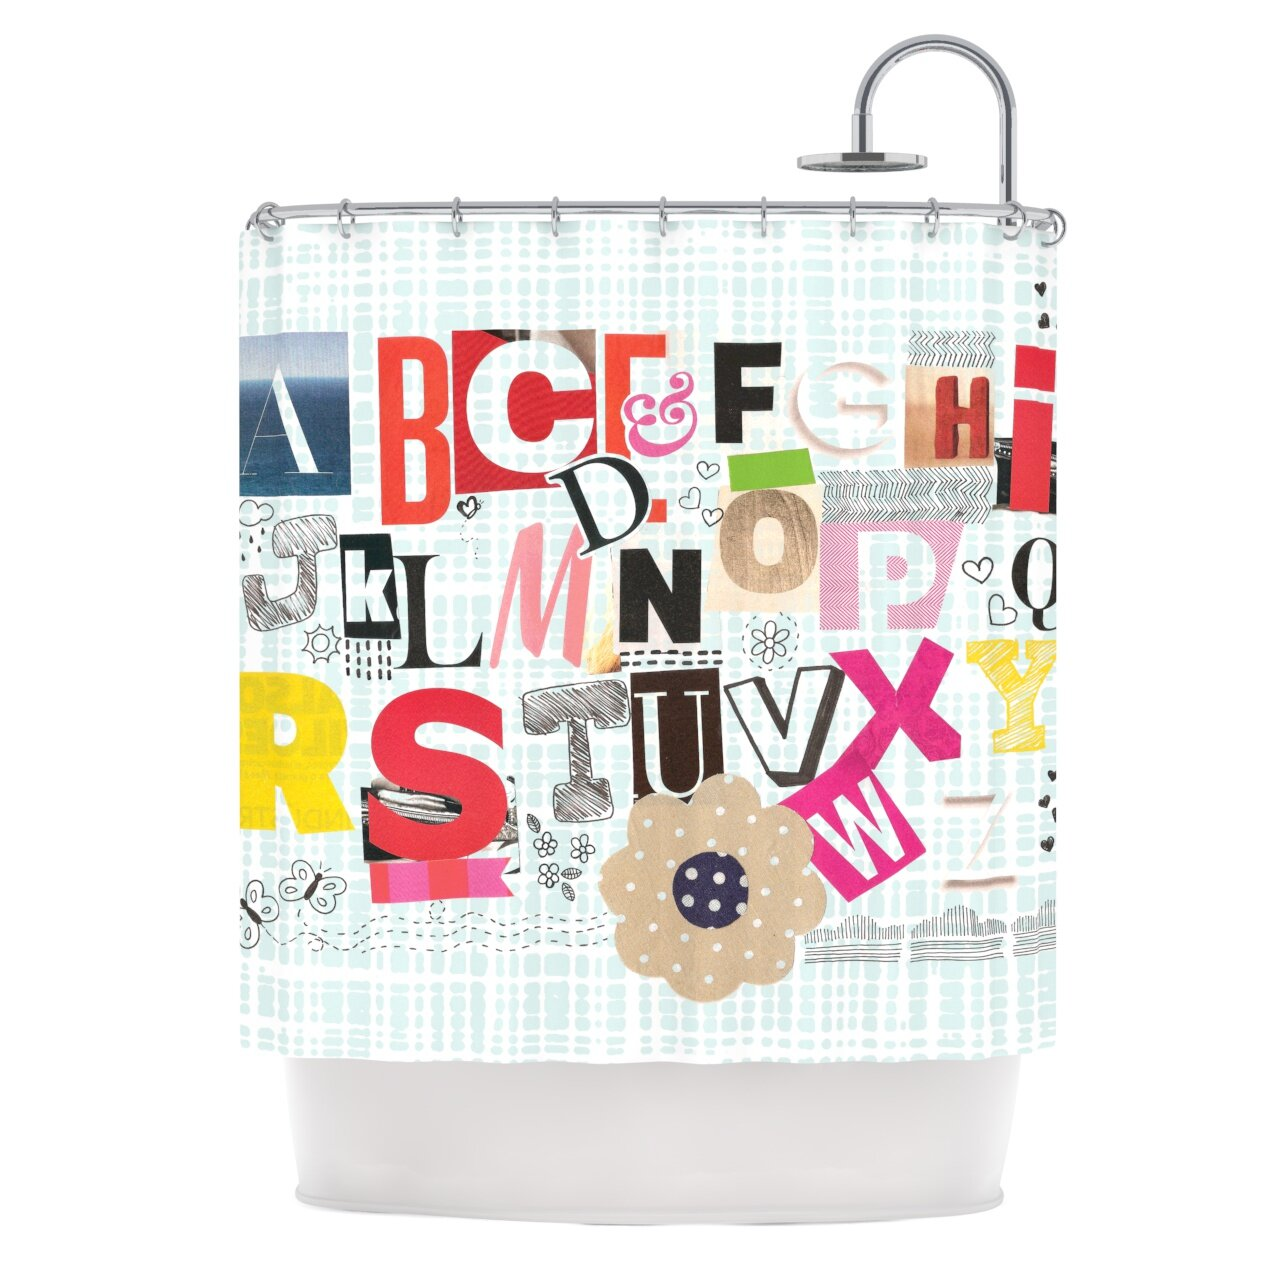 East Urban Home Abc Shower Curtain